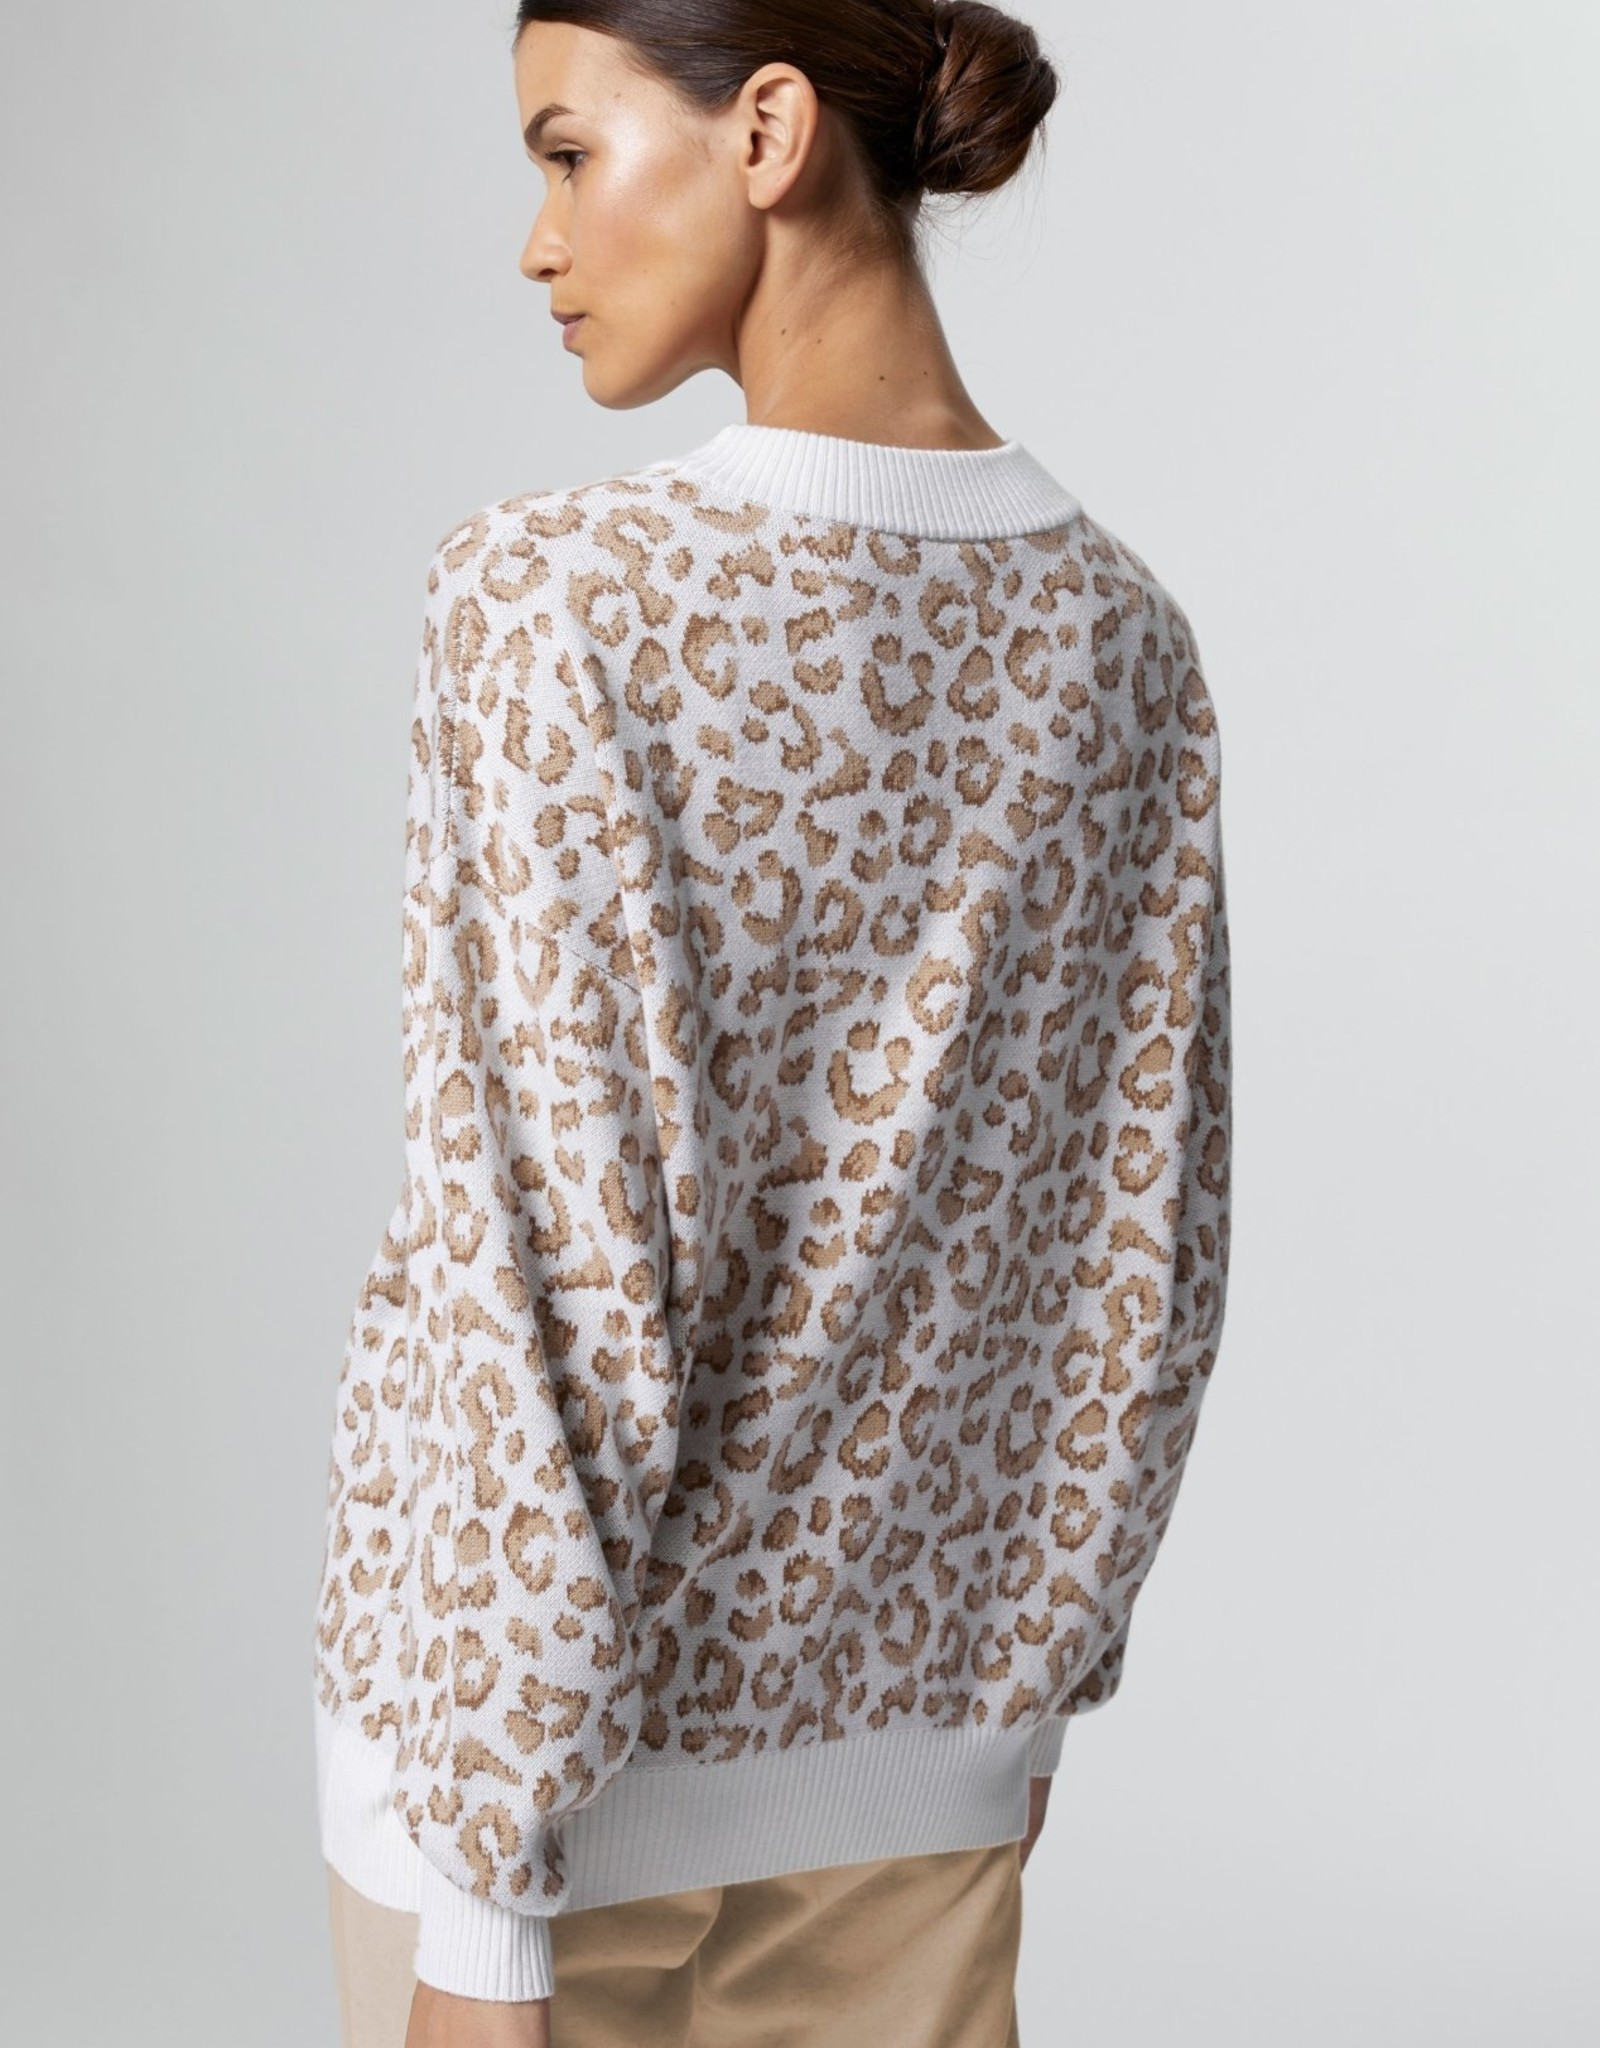 VARLEY - Hermosa Sweater